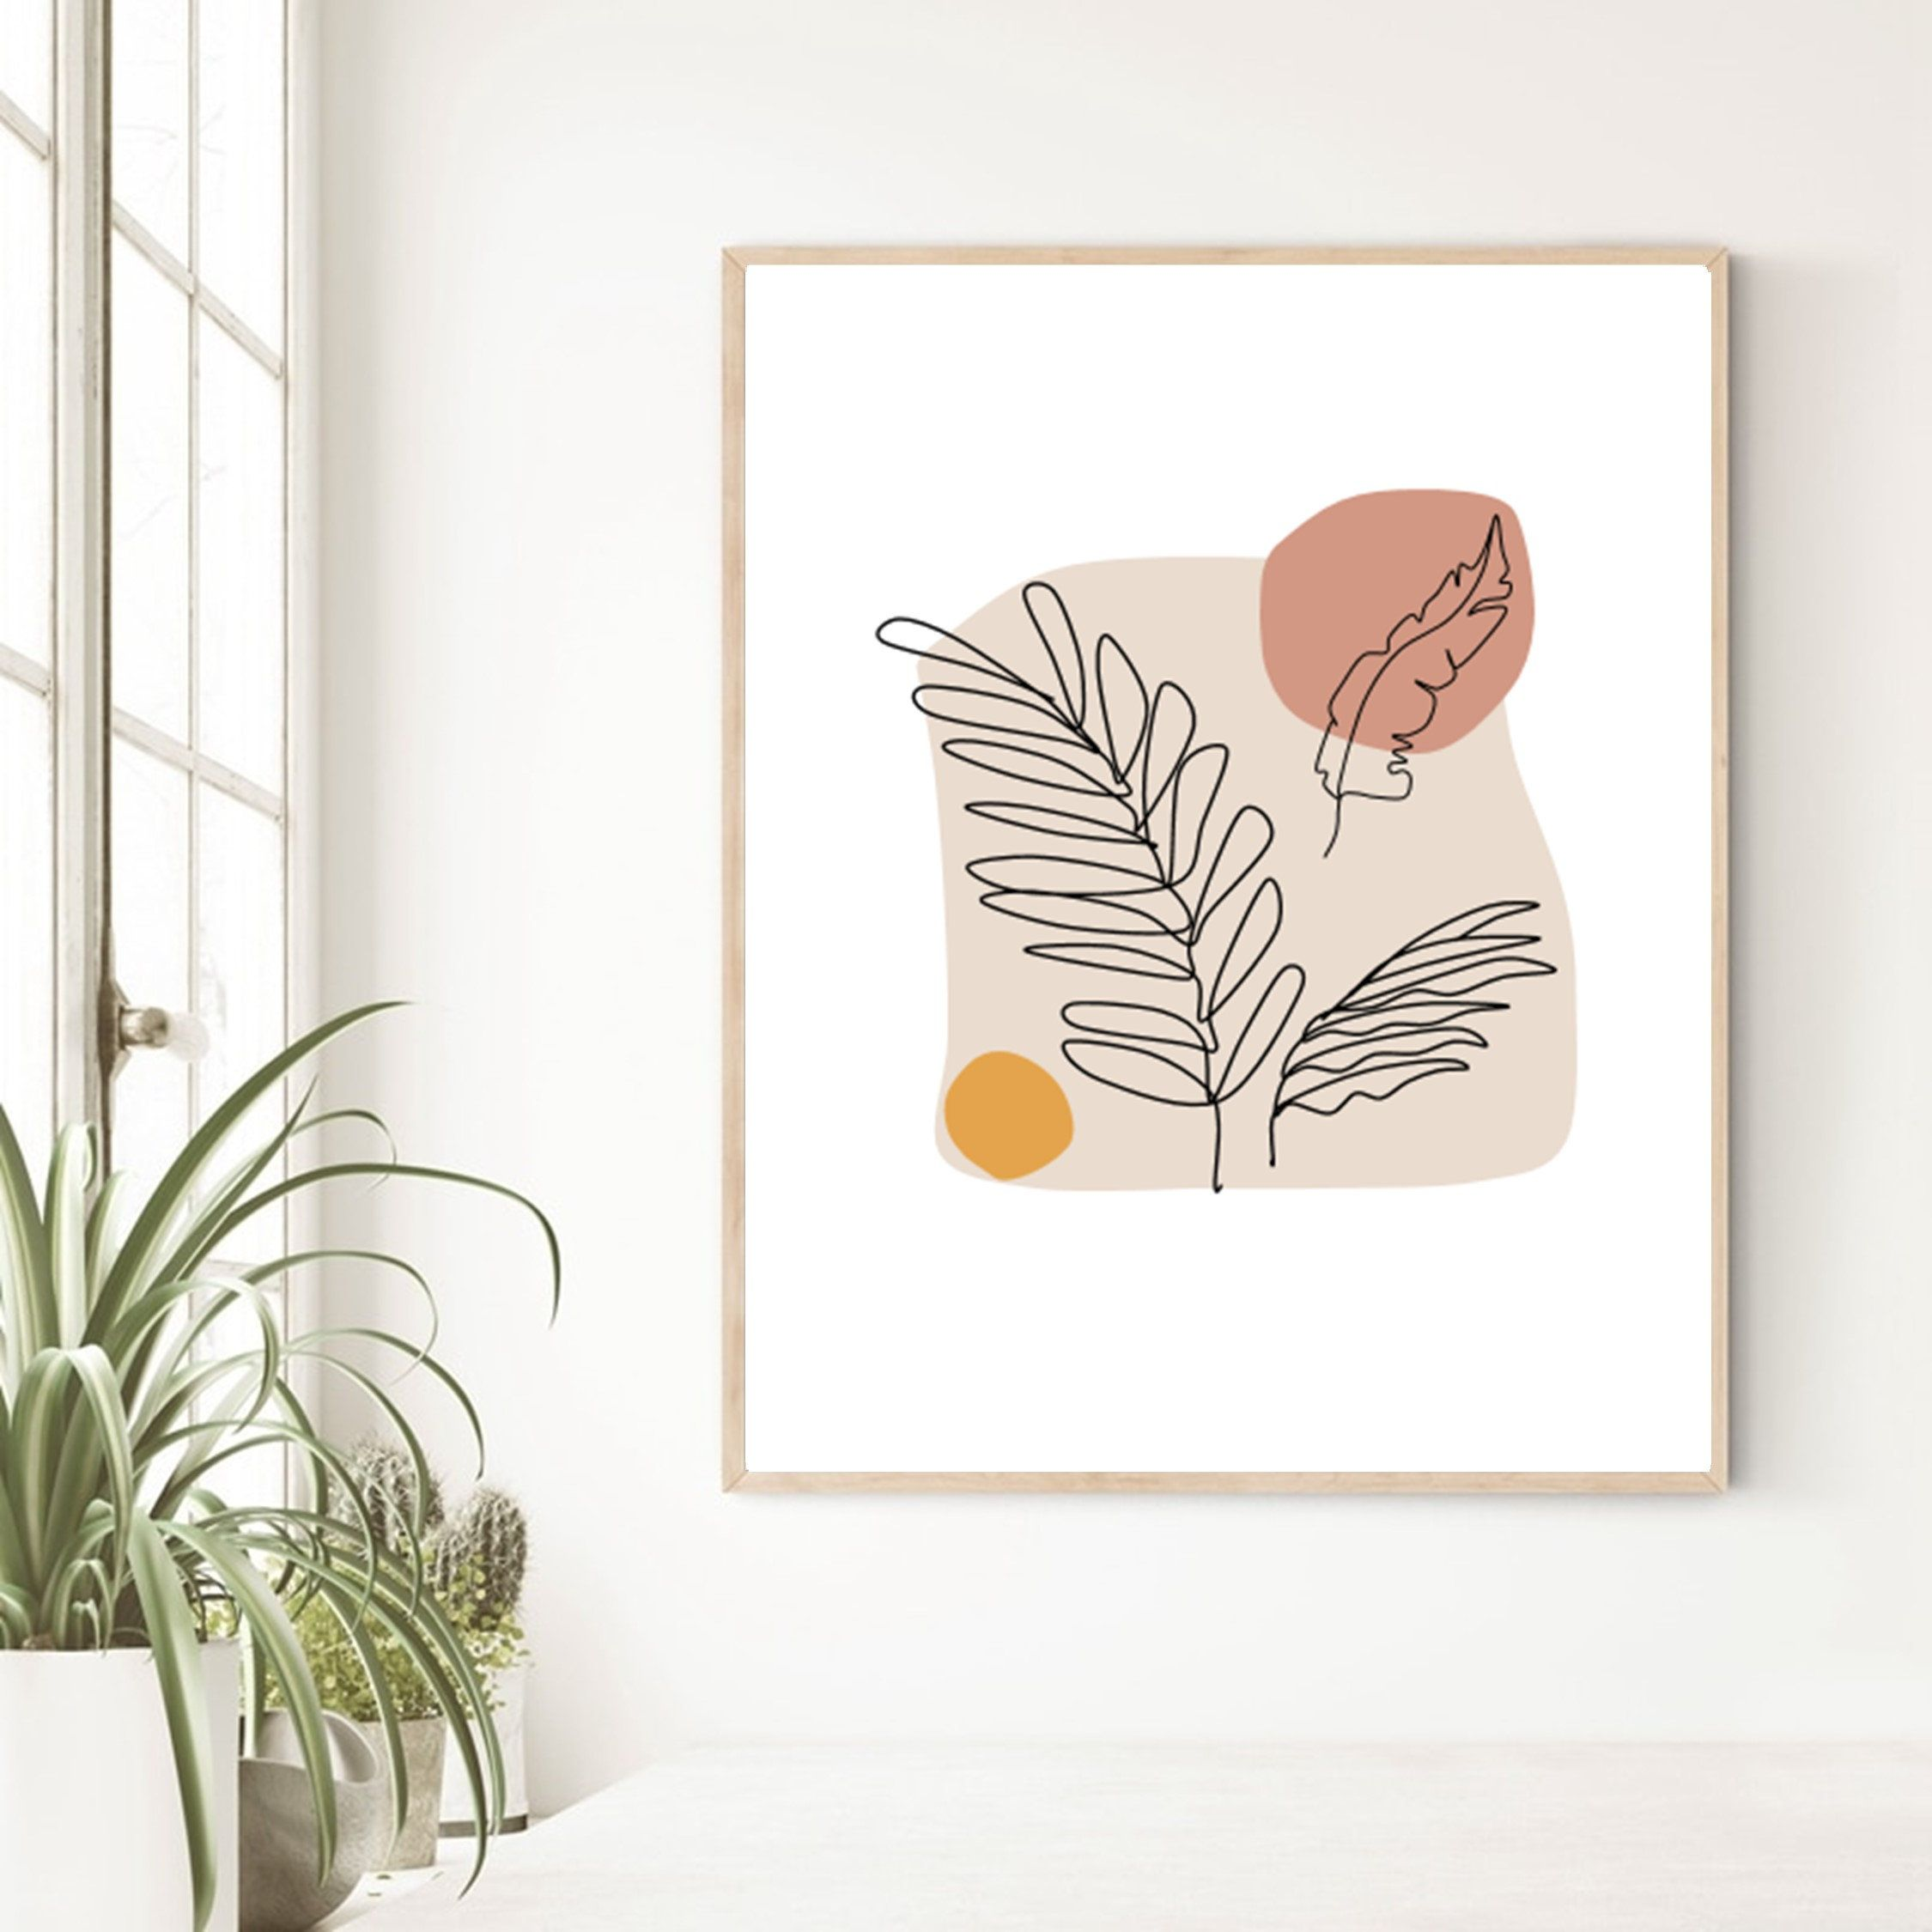 Abstract Botanical Art Print Modern Boho Wall Decor Printable Etsy In 2021 Art Gallery Wall Simple Wall Art Modern Art Abstract